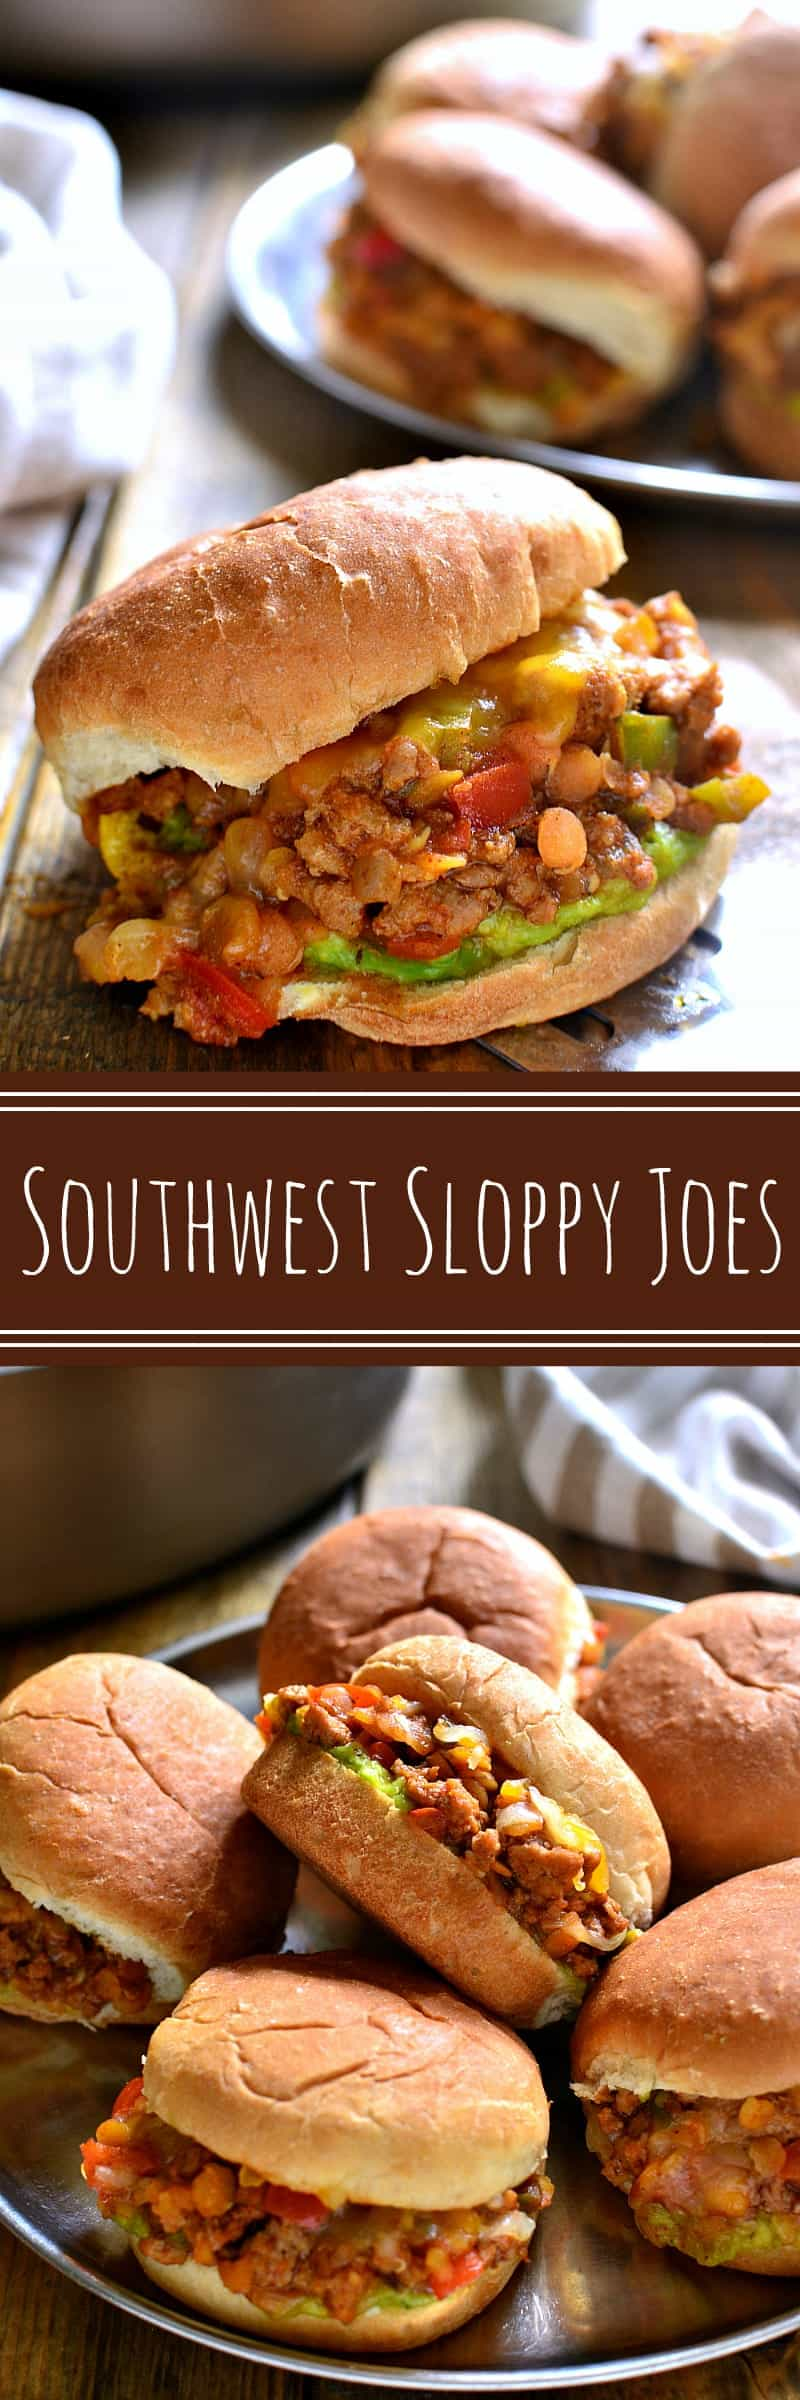 Southwest Sloppy Joes combine the classic flavors of sloppy joes with a delicious southwest twist that's sure to be a hit. Perfect for weeknight dinners, game days, or get togethers, these sloppy joes are easy to make and fit for a crowd!